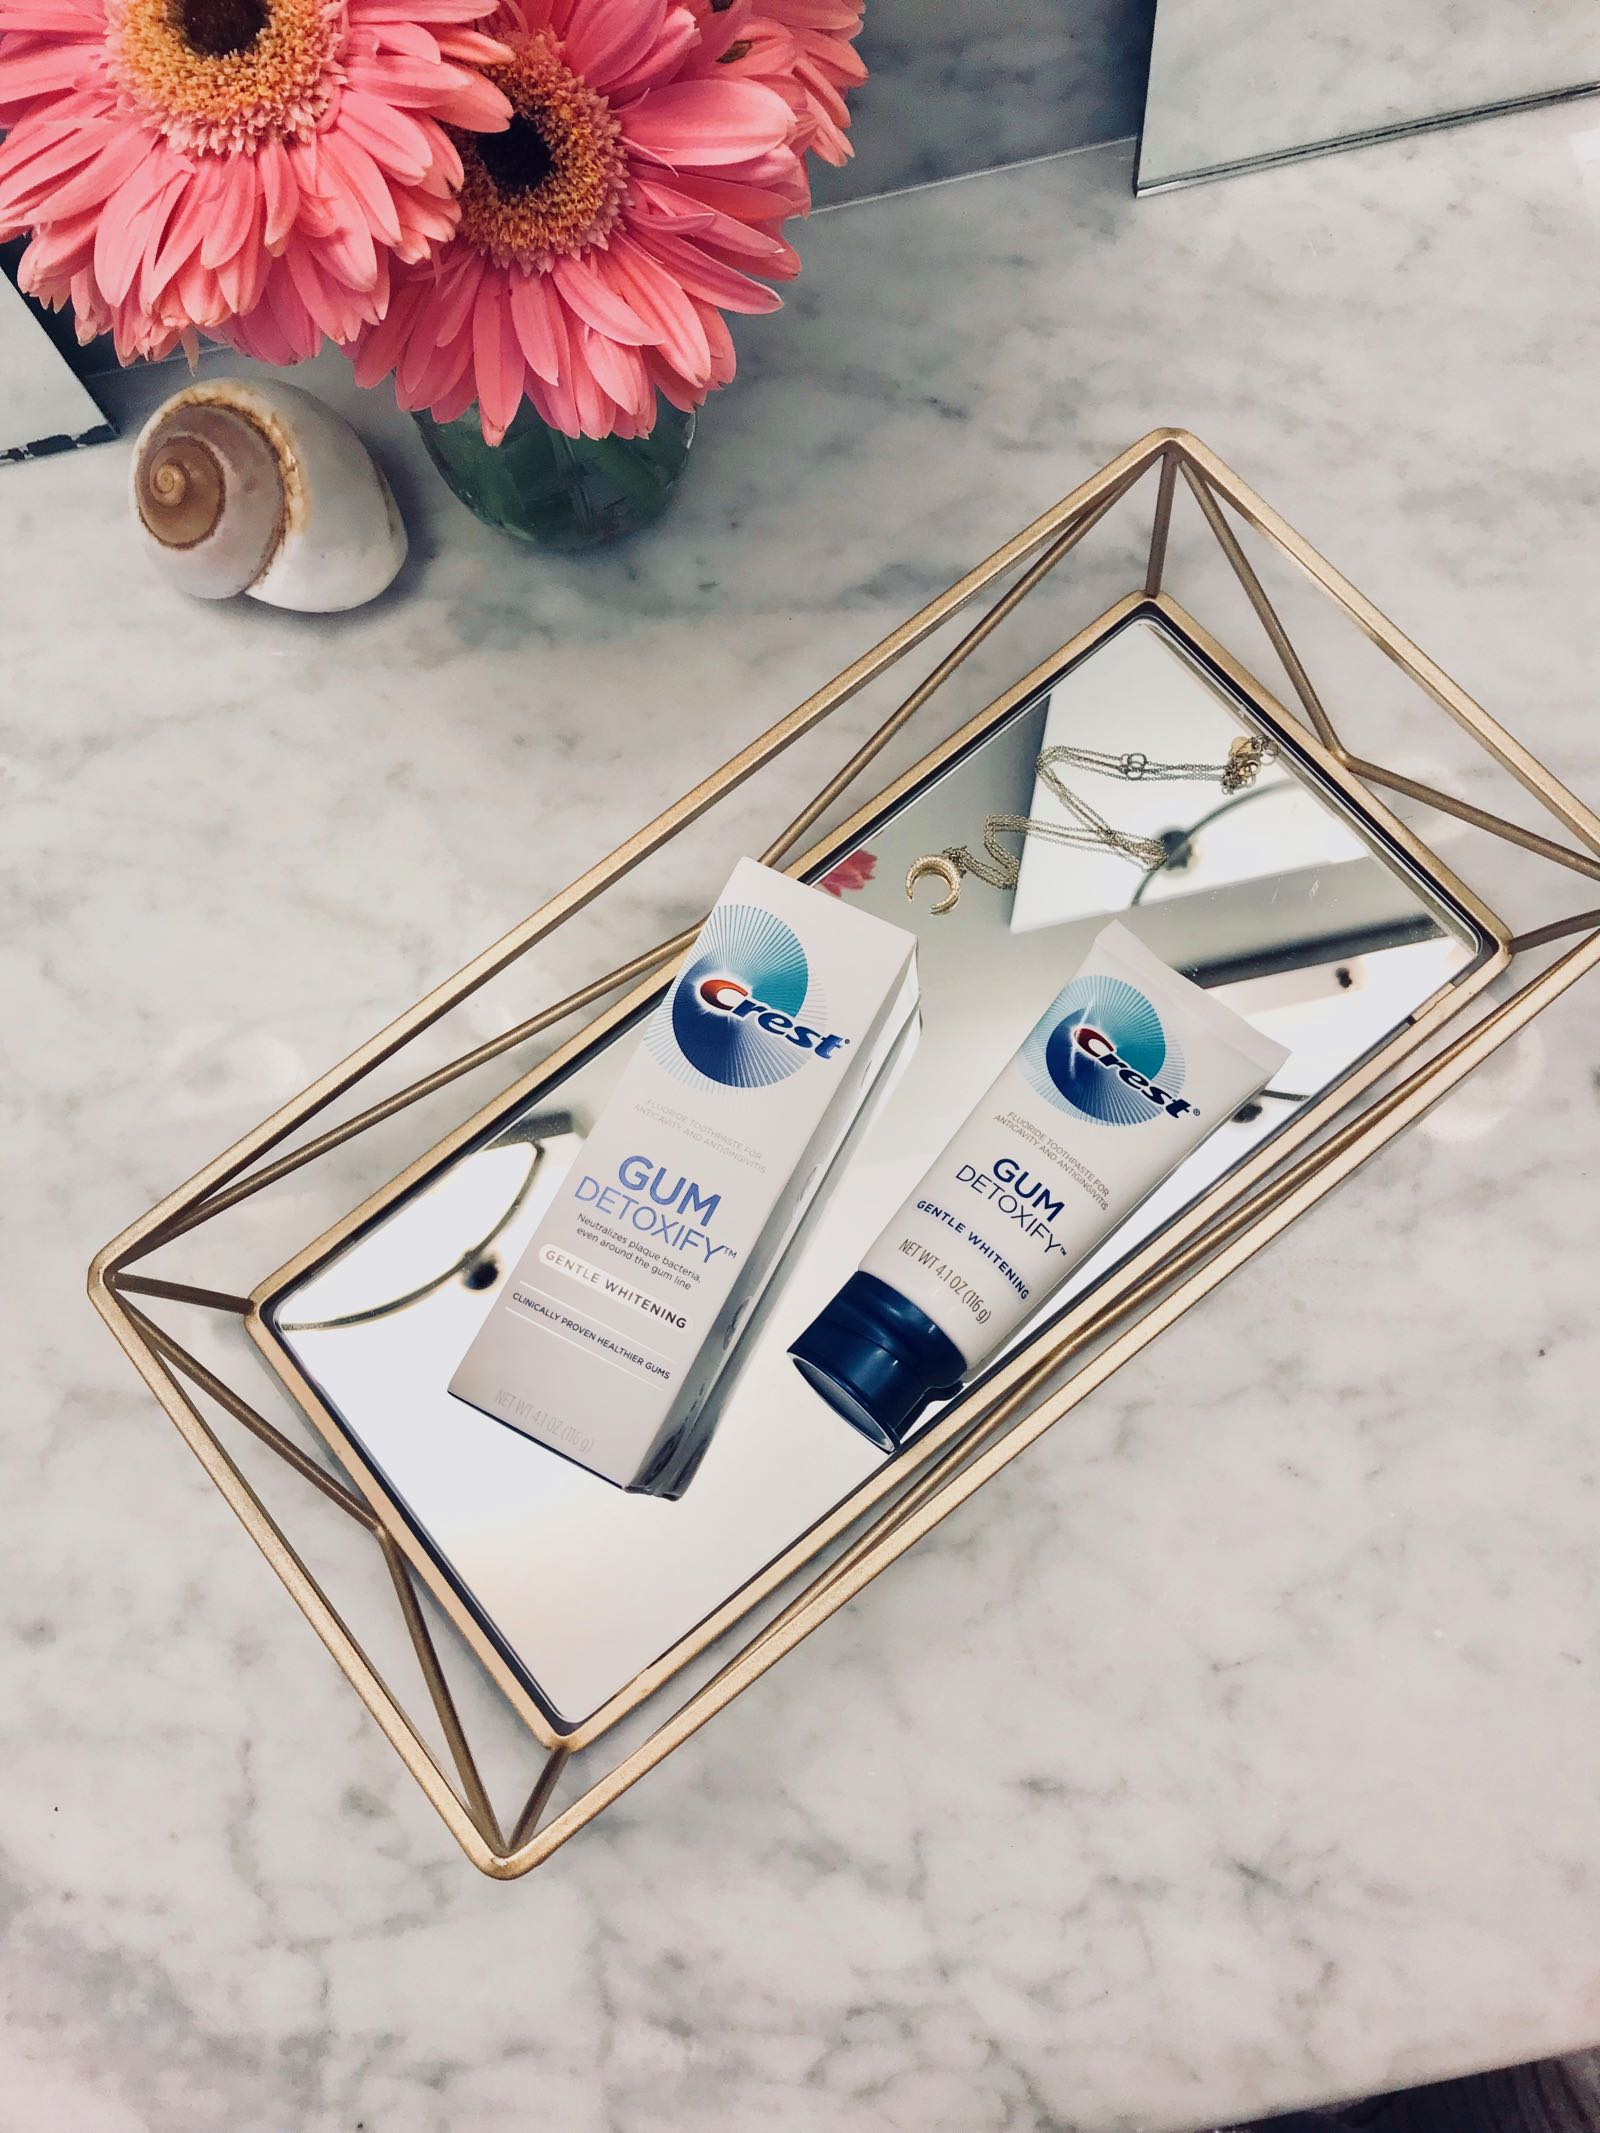 Save $1 on new Crest Gum Detoxify Toothpaste, available at Target! Leaves gums cleaner and healthier #forgumssake #ad